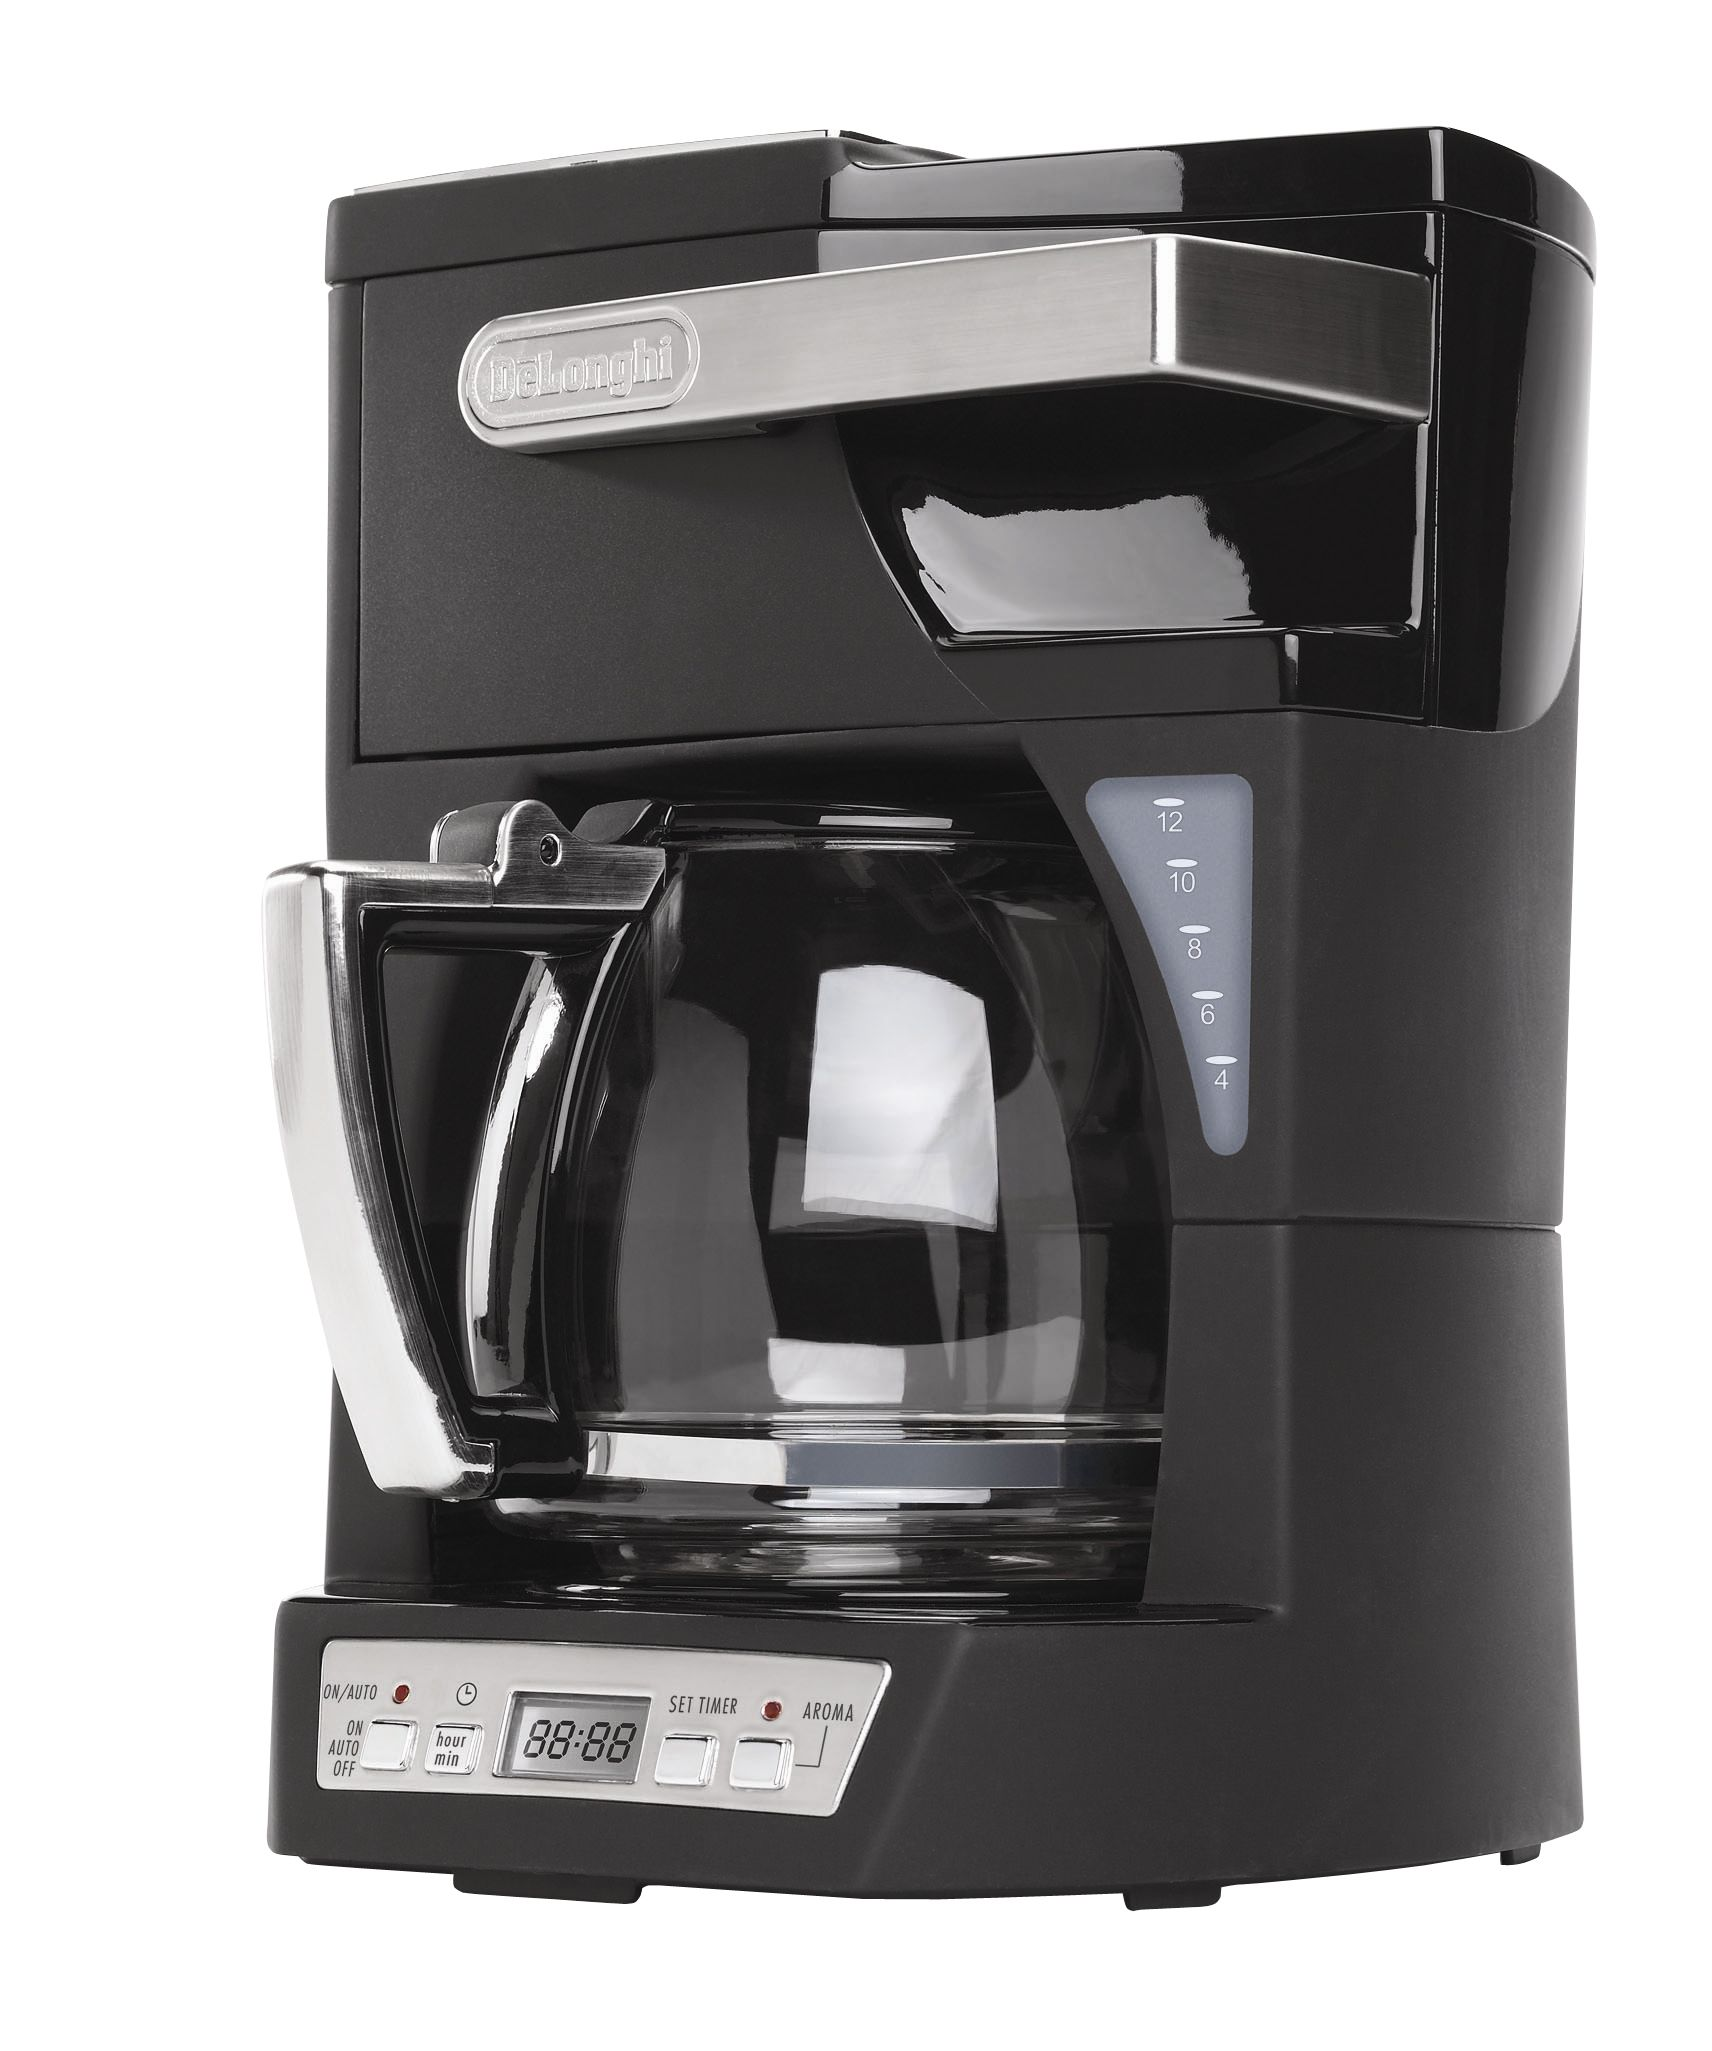 DeLONGHI 12 Cup Front Load Coffee Maker Appliances Small Kitchen Appliances Coffee